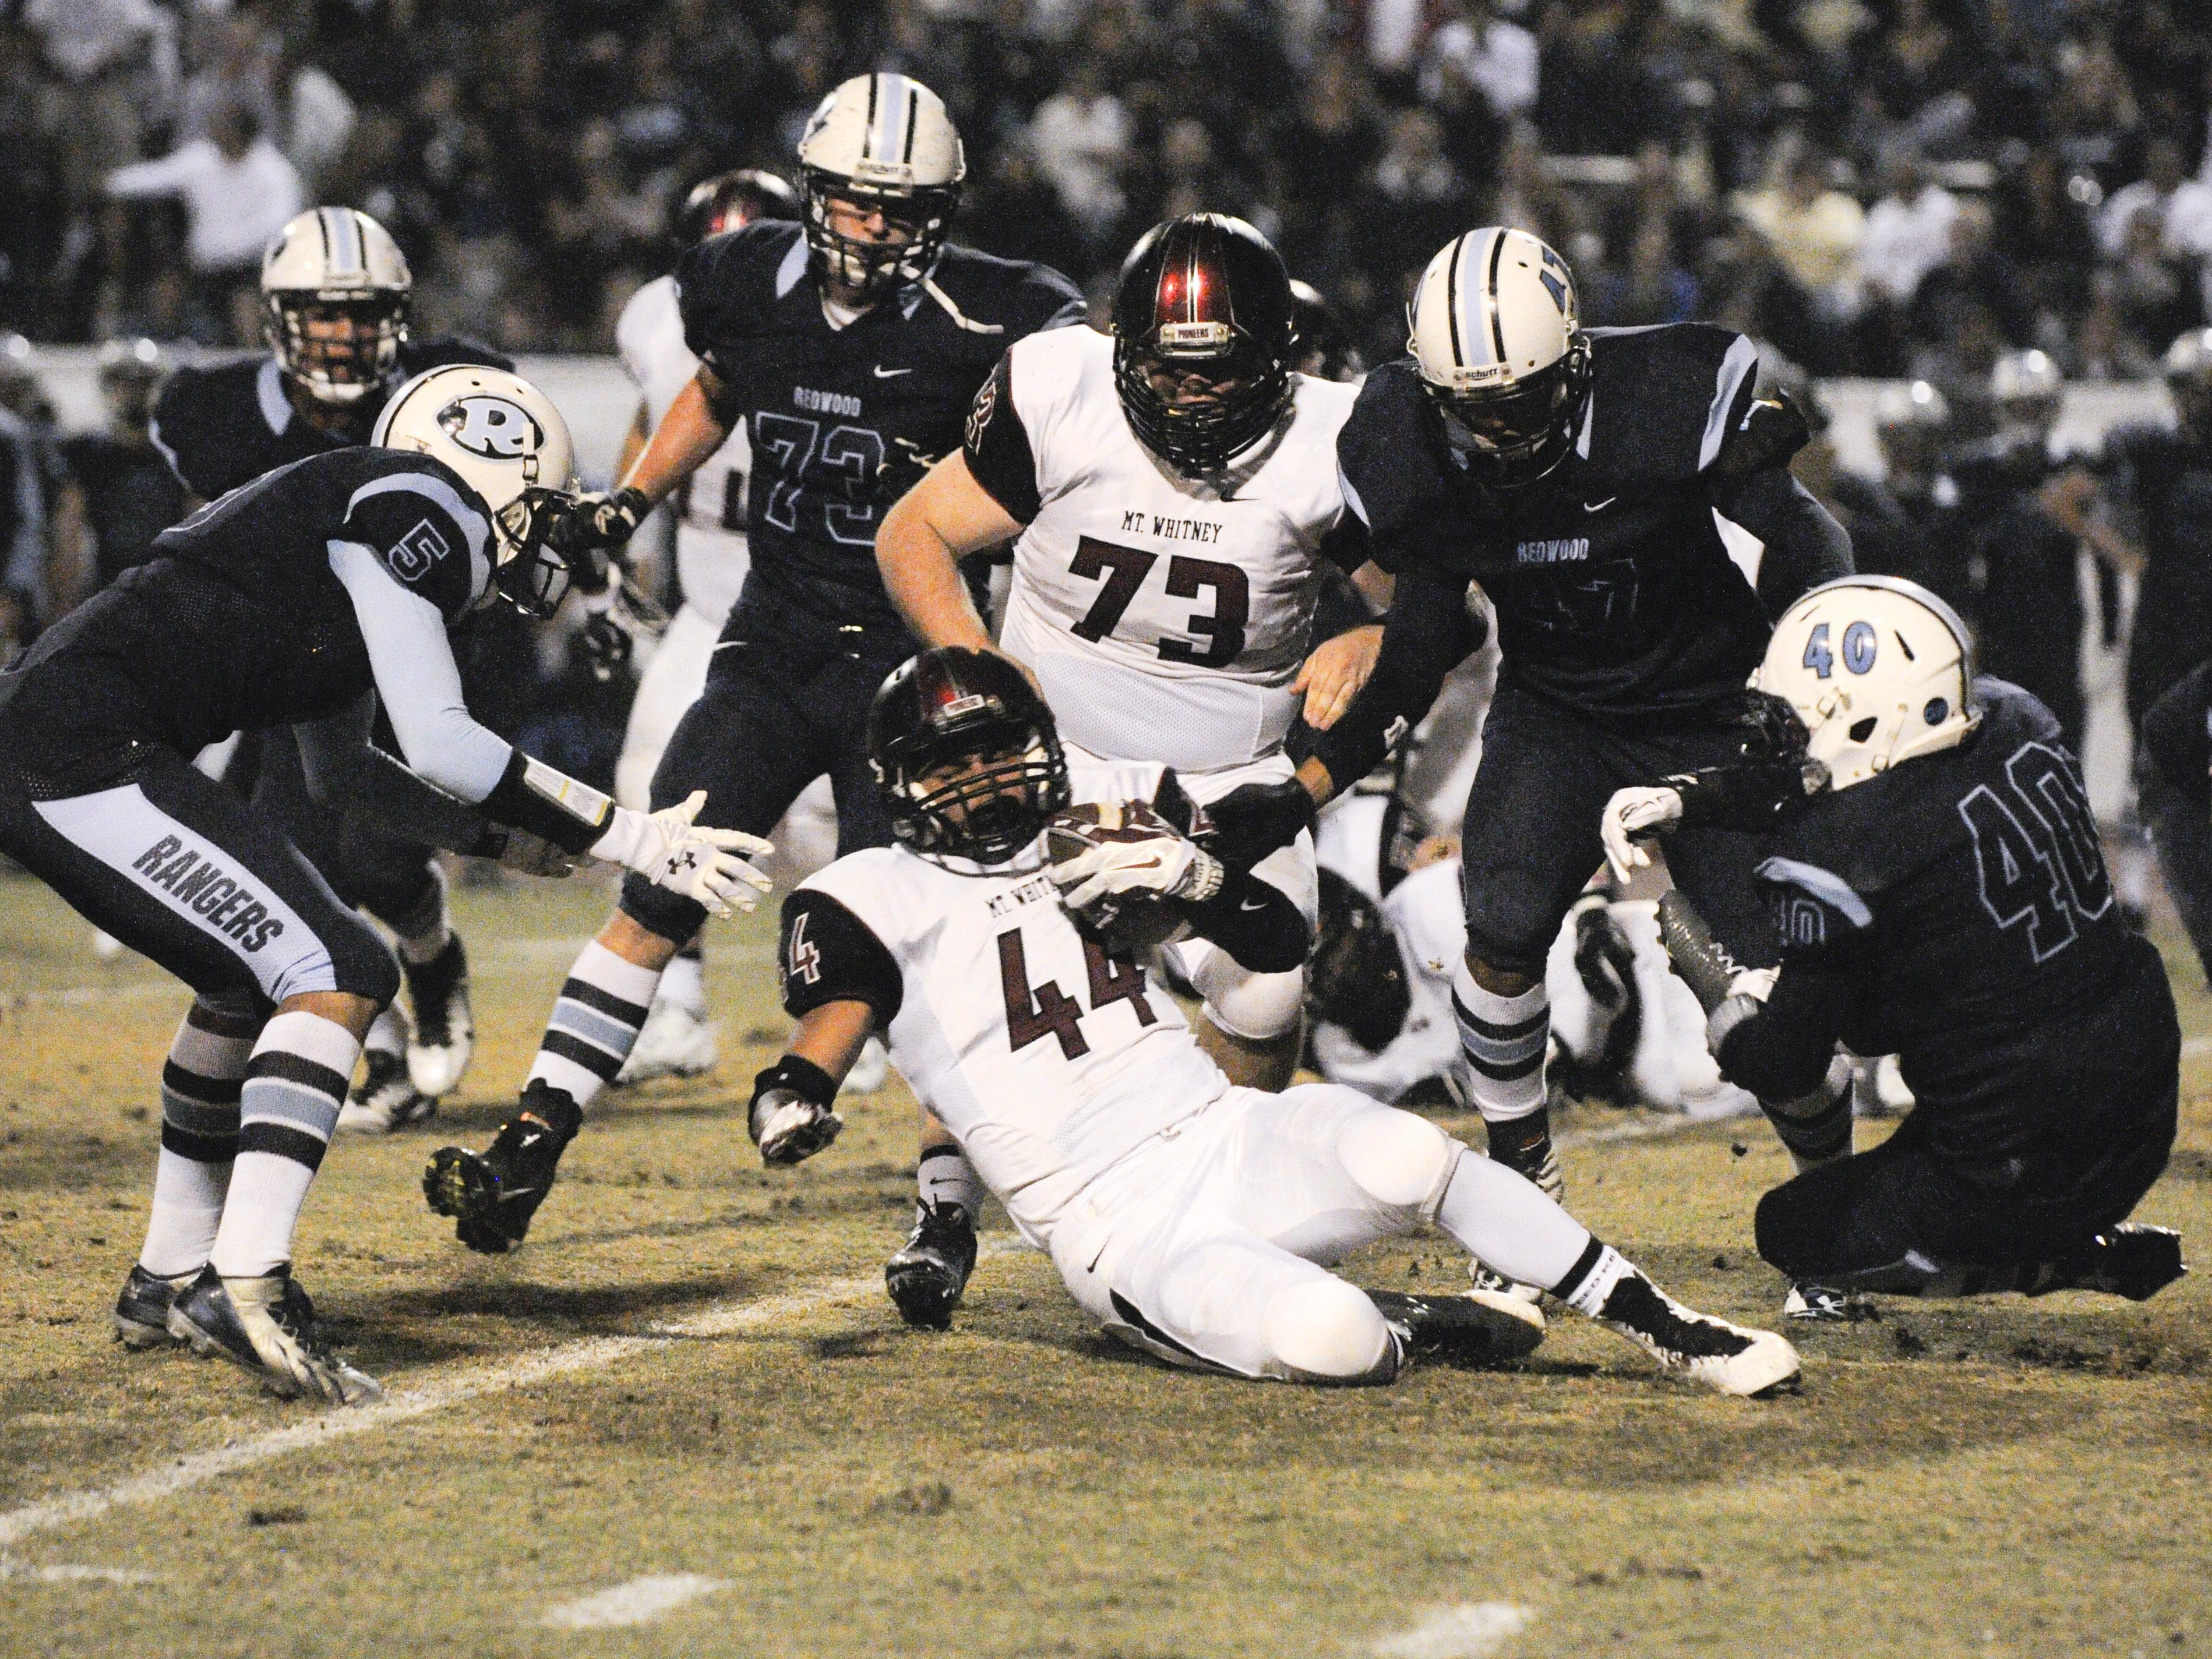 Mt. Whitney running back Michael Ingram holds onto possession in the 60th annual Cowhide game at Giant Chevrolet-Cadillac Mineral King Bowl last season. Redwood won 41-14.